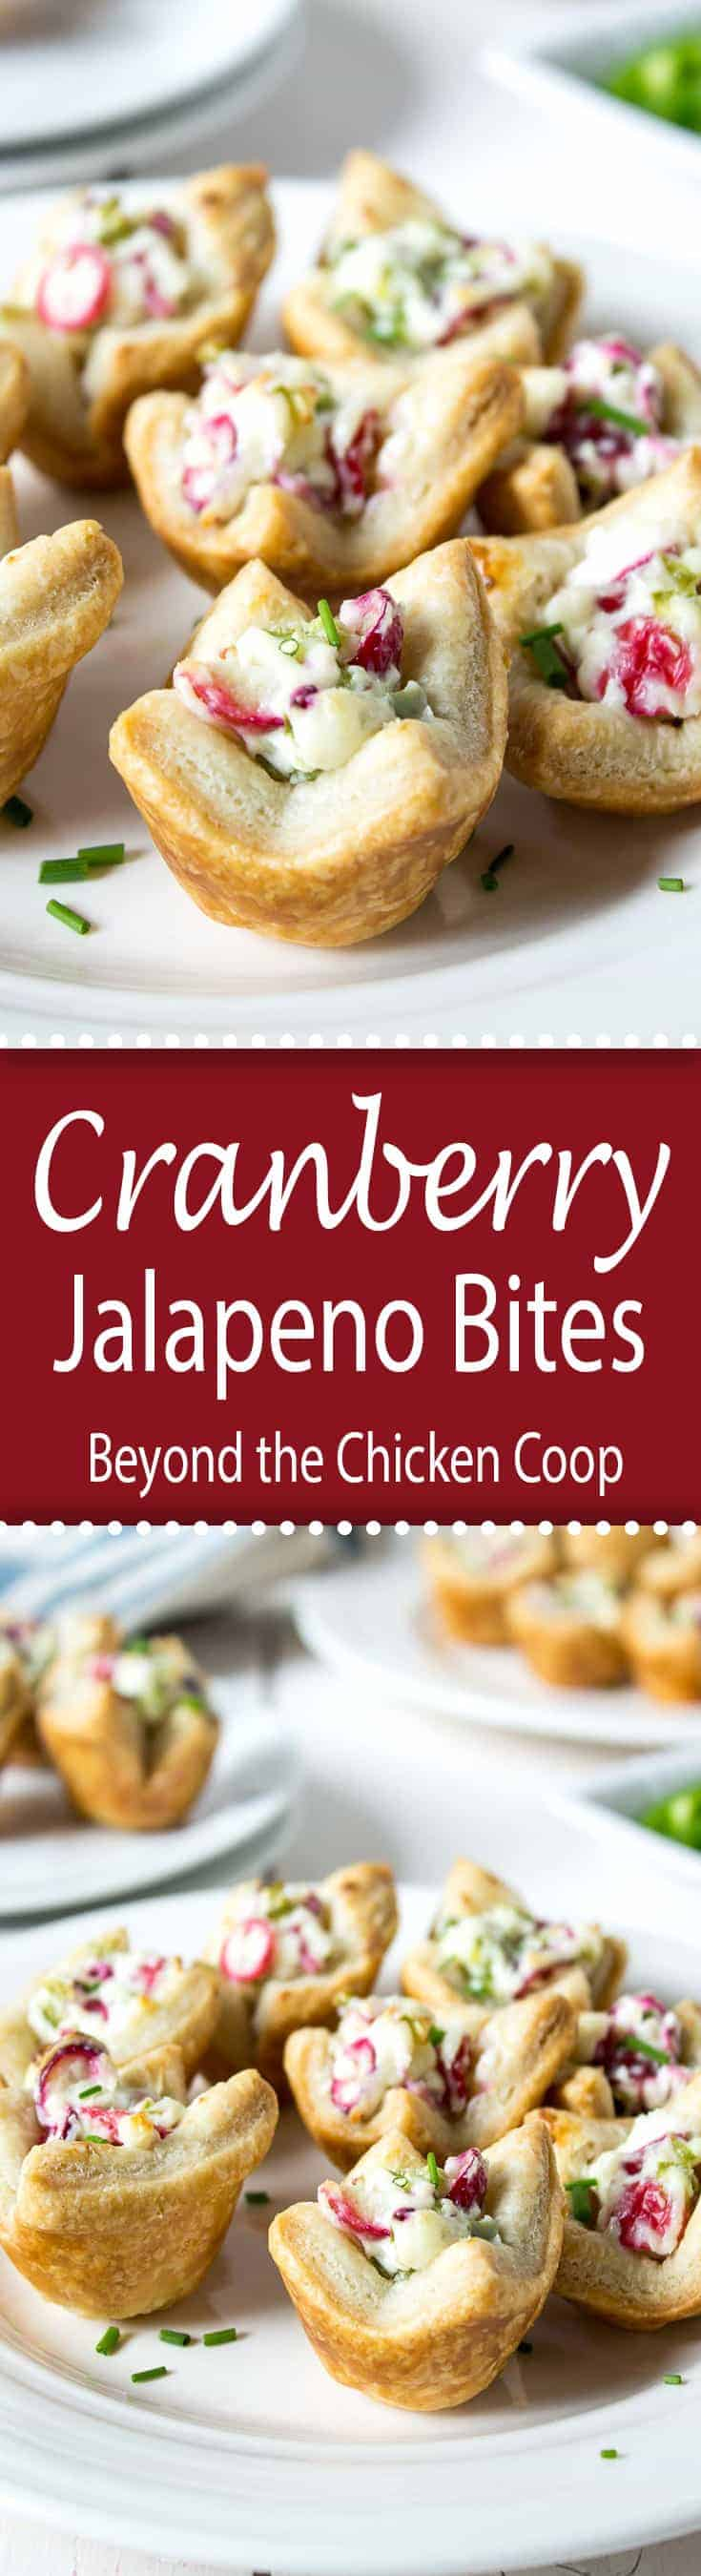 These cranberry jalapeno bites are a bit tart from the cranberries and a bit spicy from the jalapenos - a perfect combination.